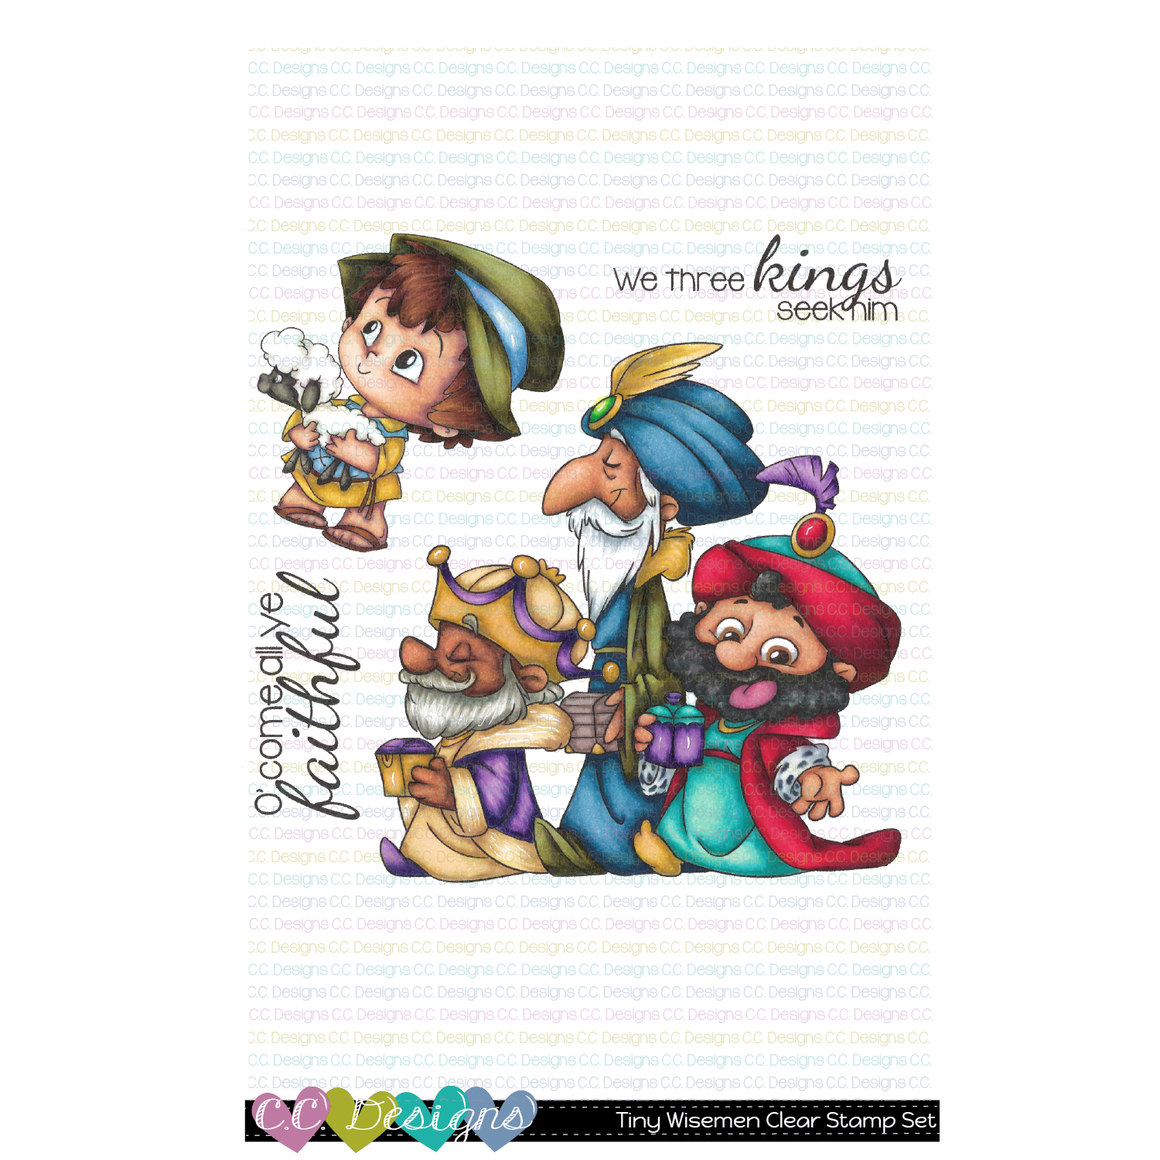 **New Tiny Wisemen Clear Stamp Set